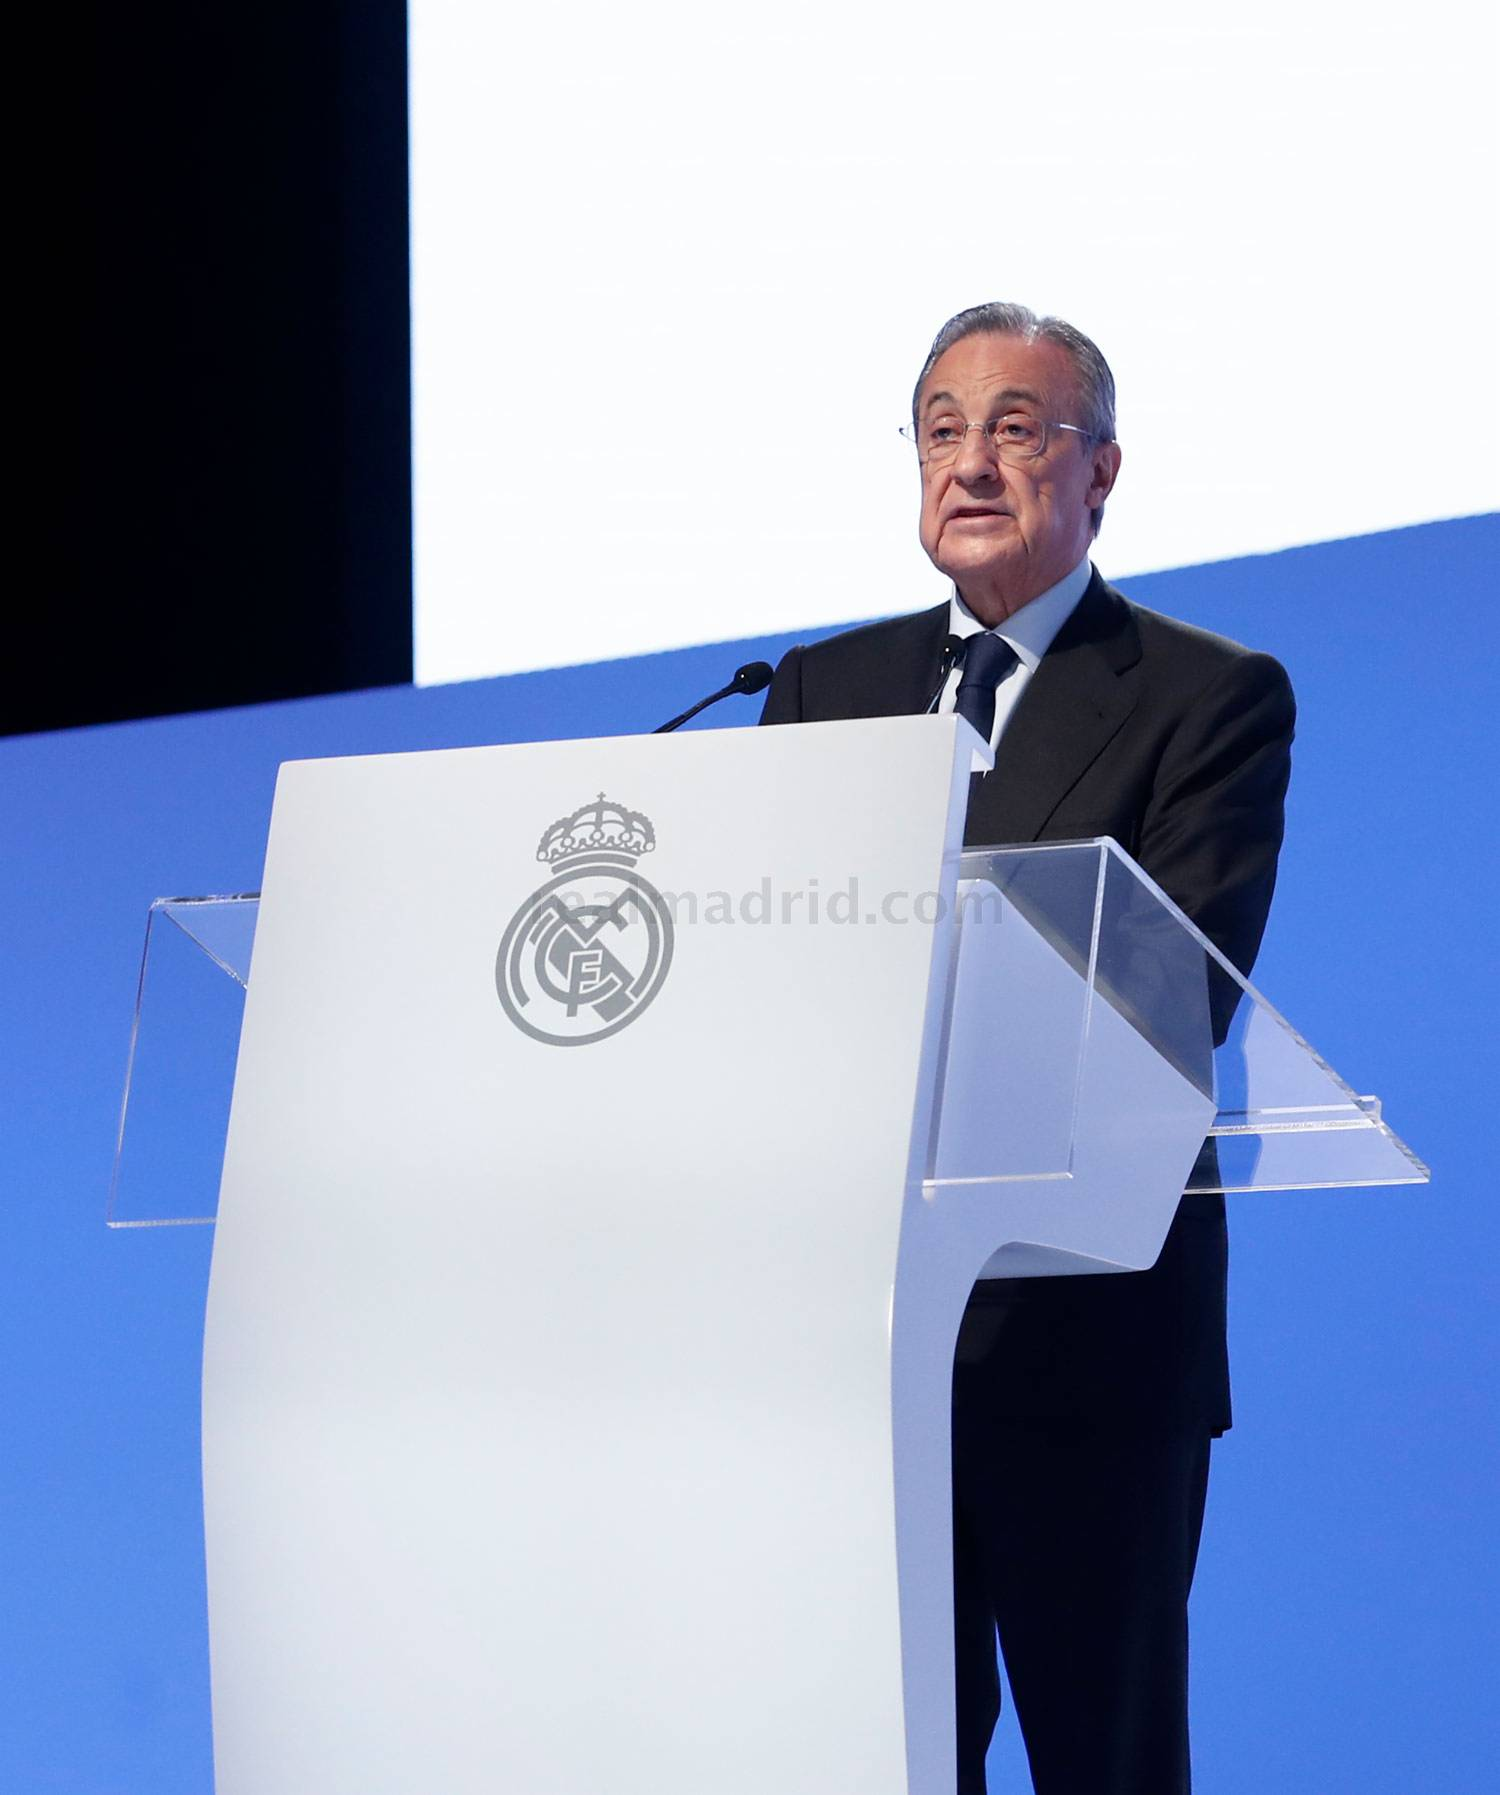 Real Madrid - Asamblea General 2019 - 15-09-2019